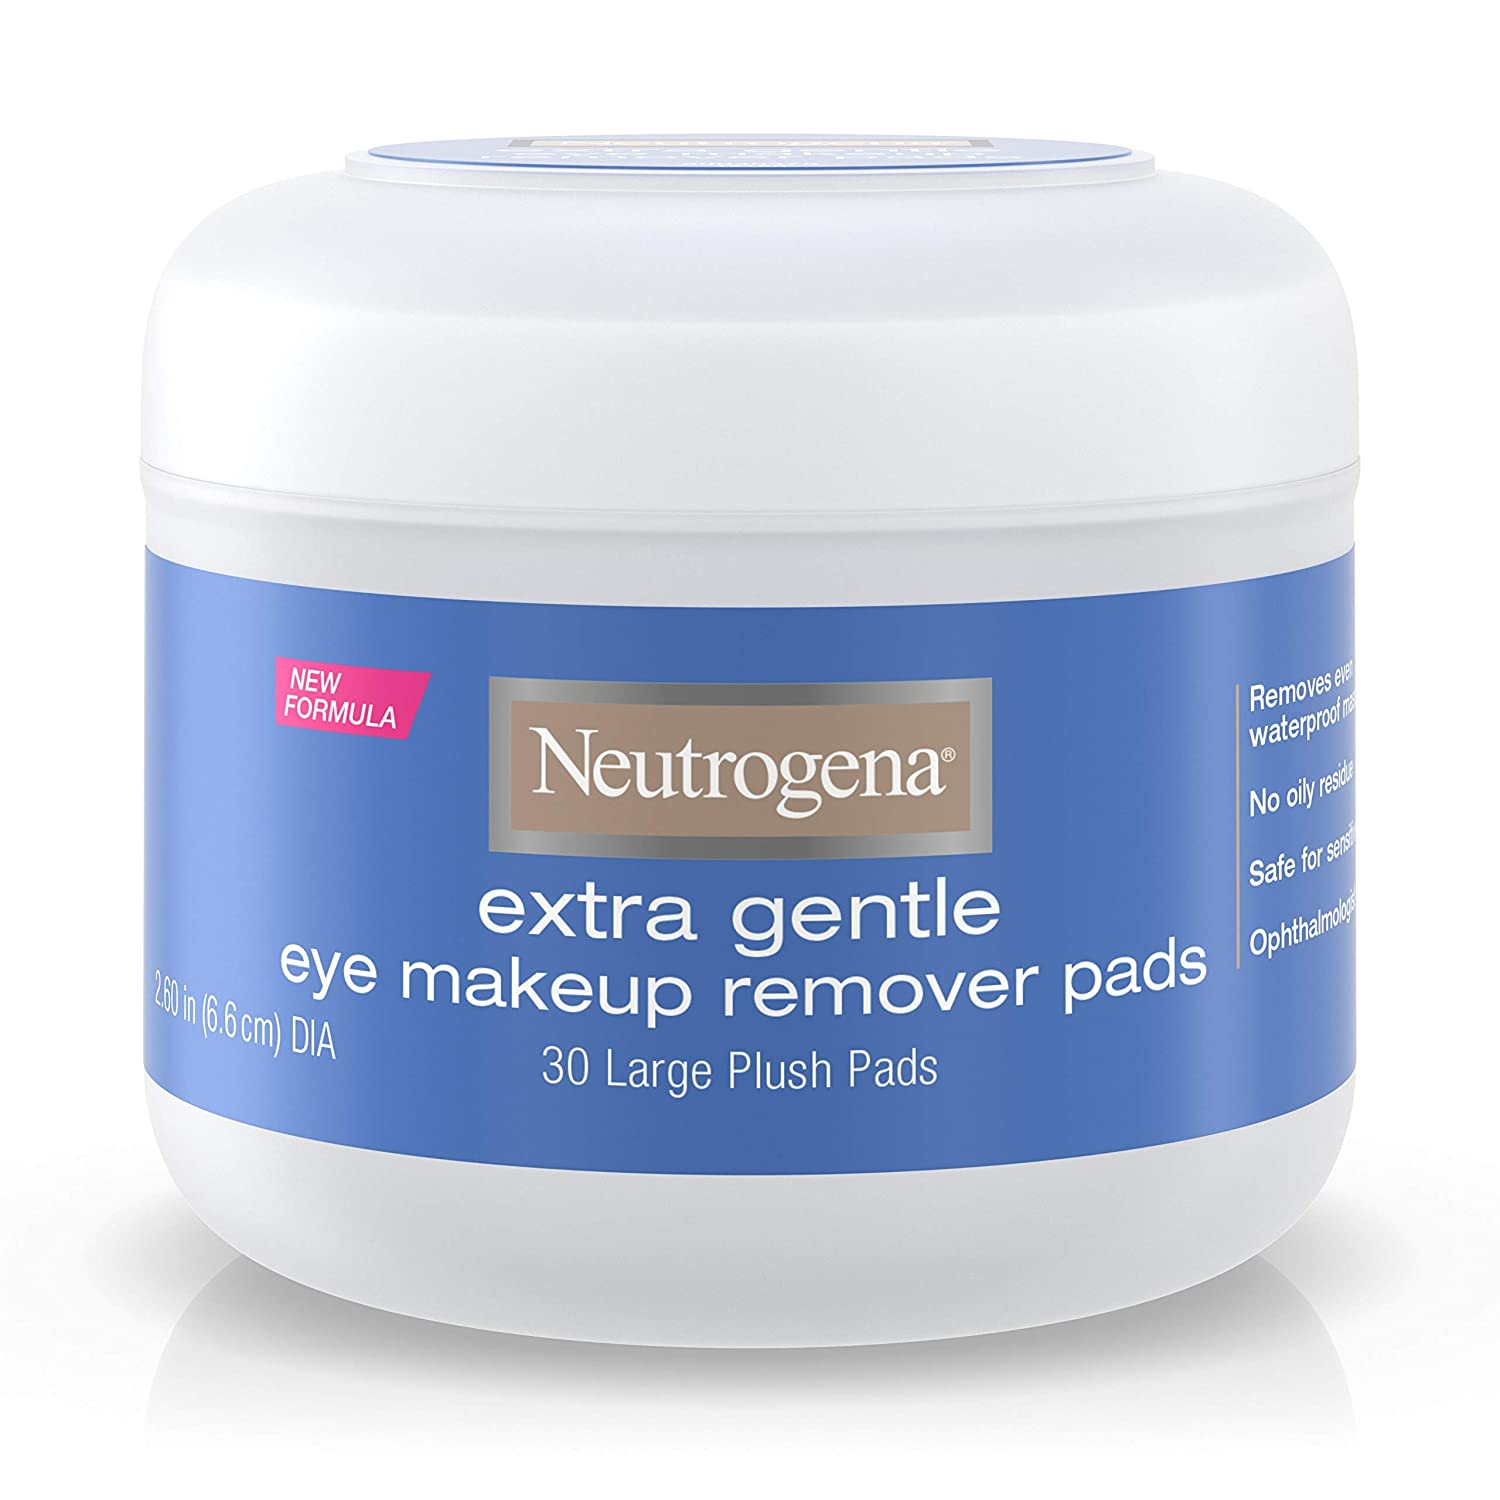 Neutrogena Extra Gentle Eye Makeup Remover Pads - 30 Pads